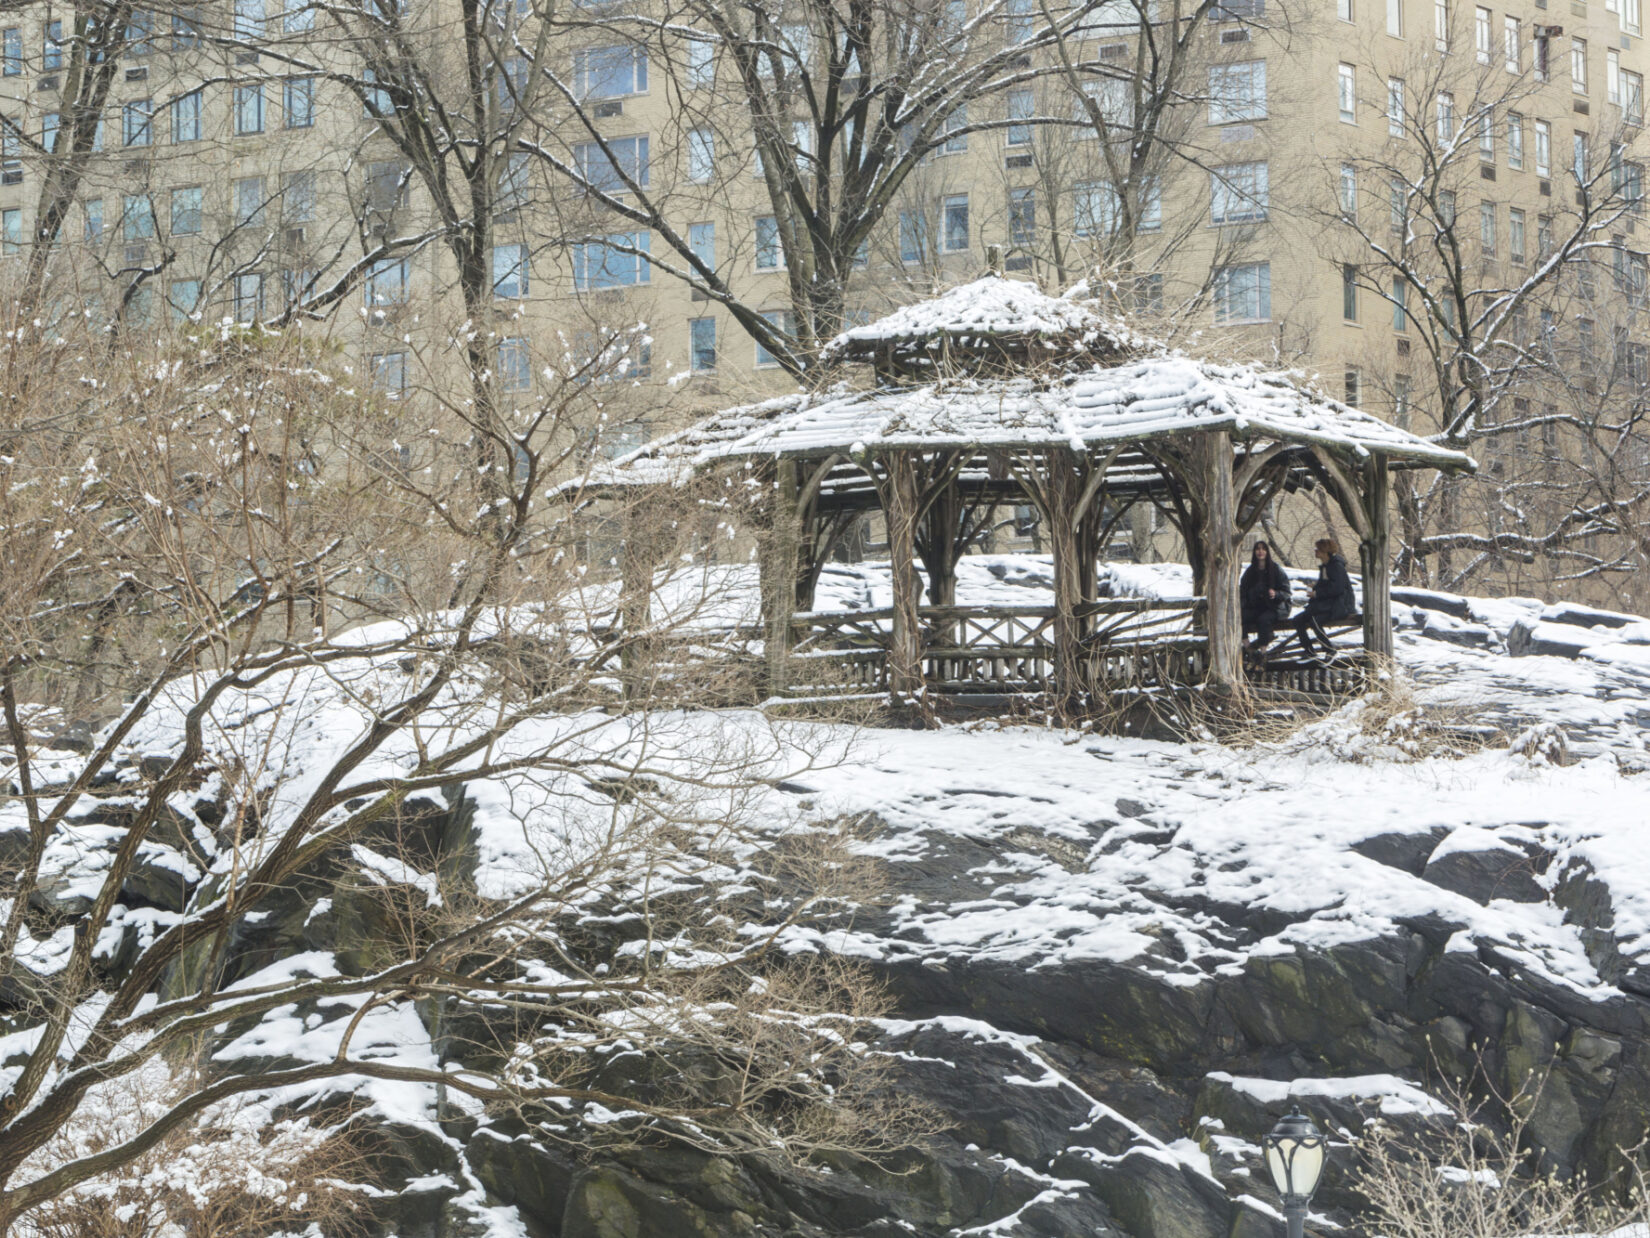 The Shelter is pictured dusted with snow with two parkgoers enjoying its shelter